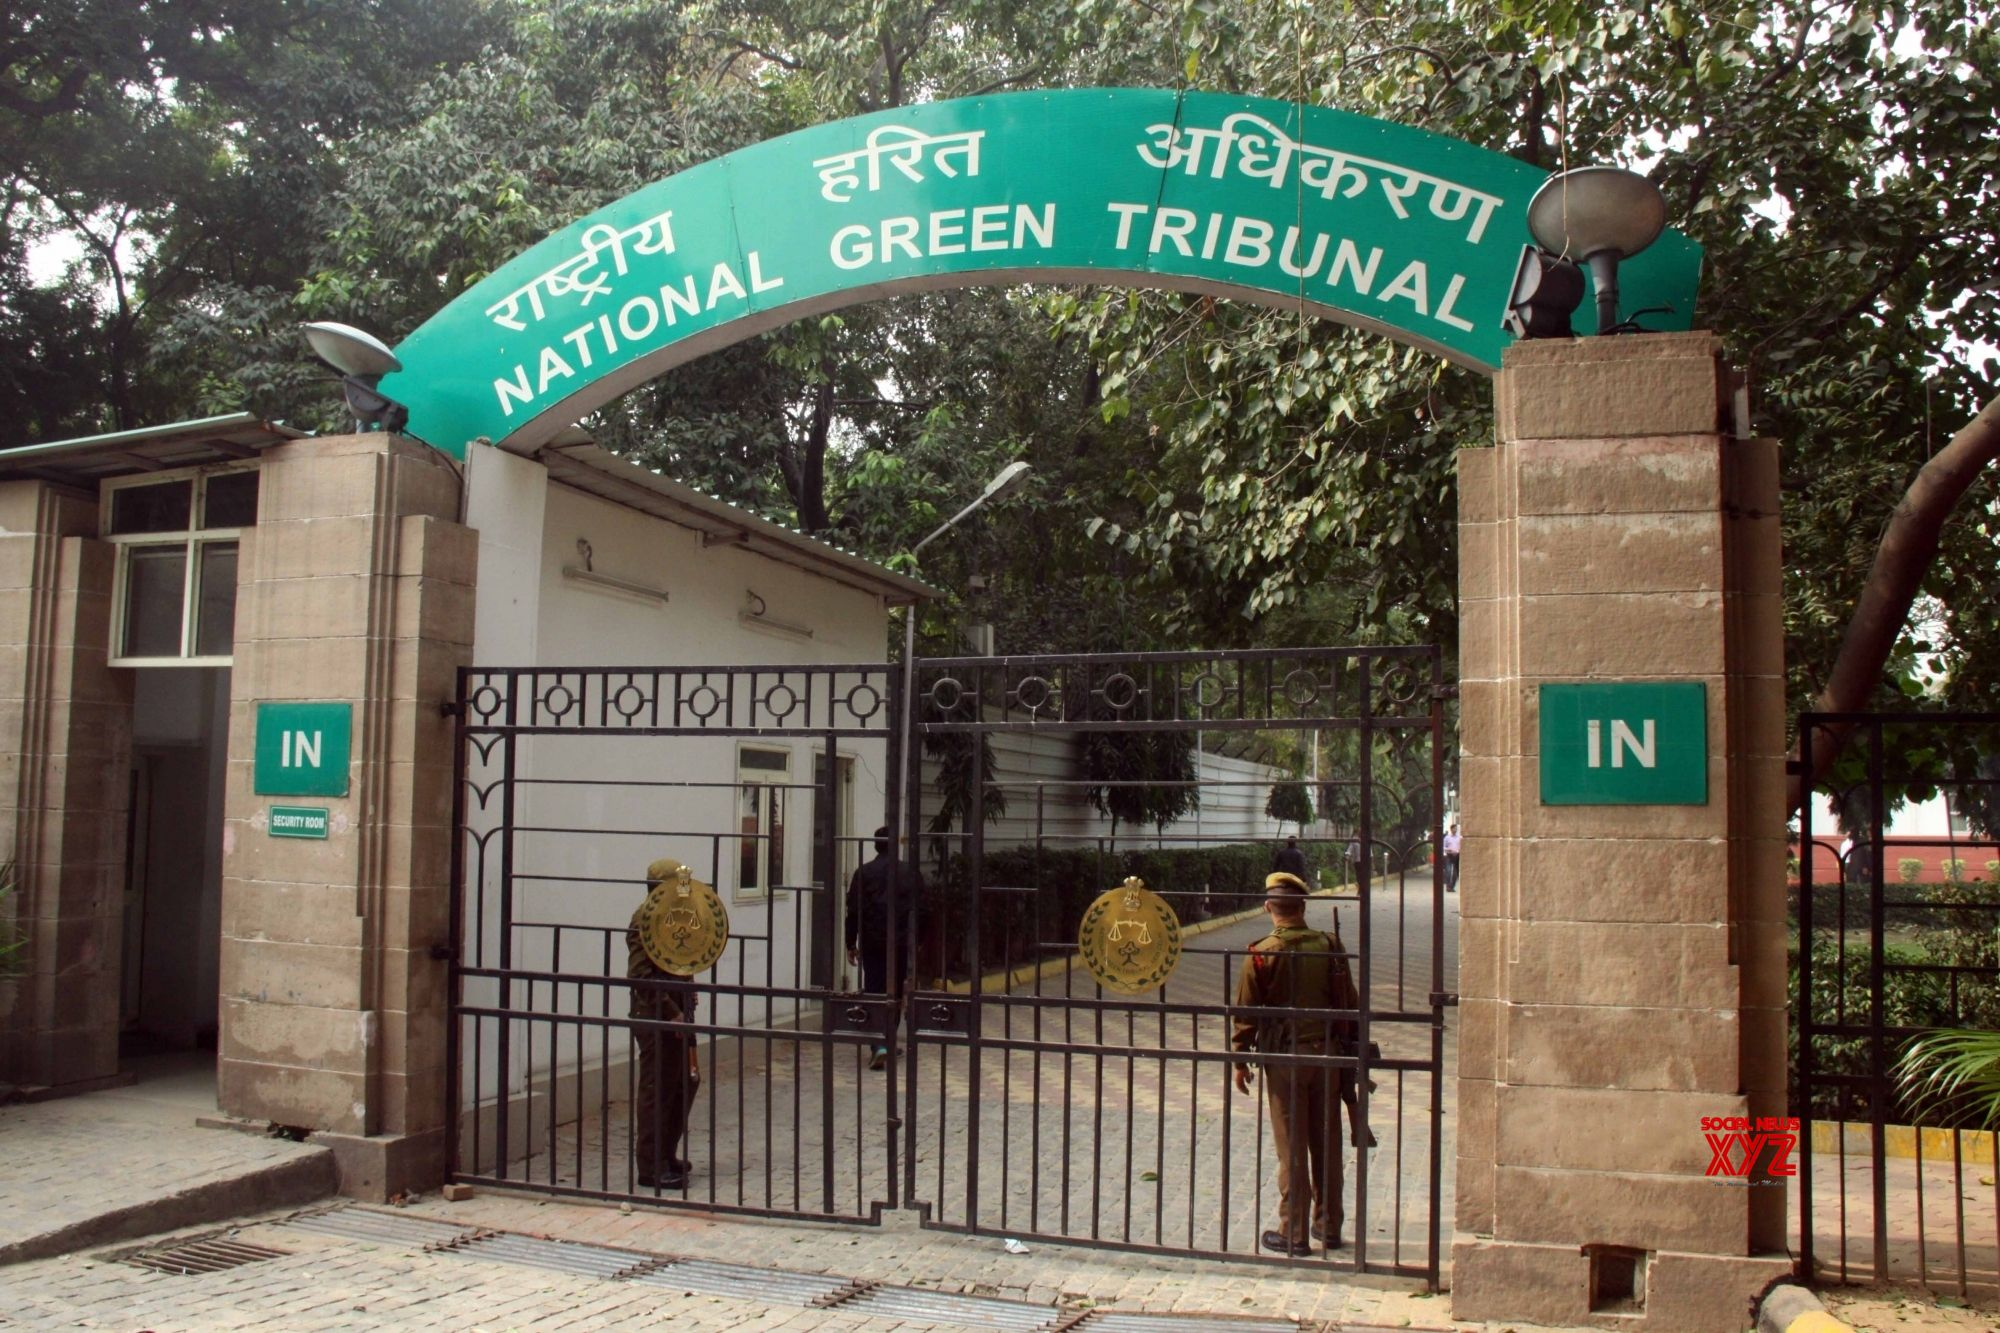 Set up nodal agencies to restore water bodies: NGT asks states, UTs